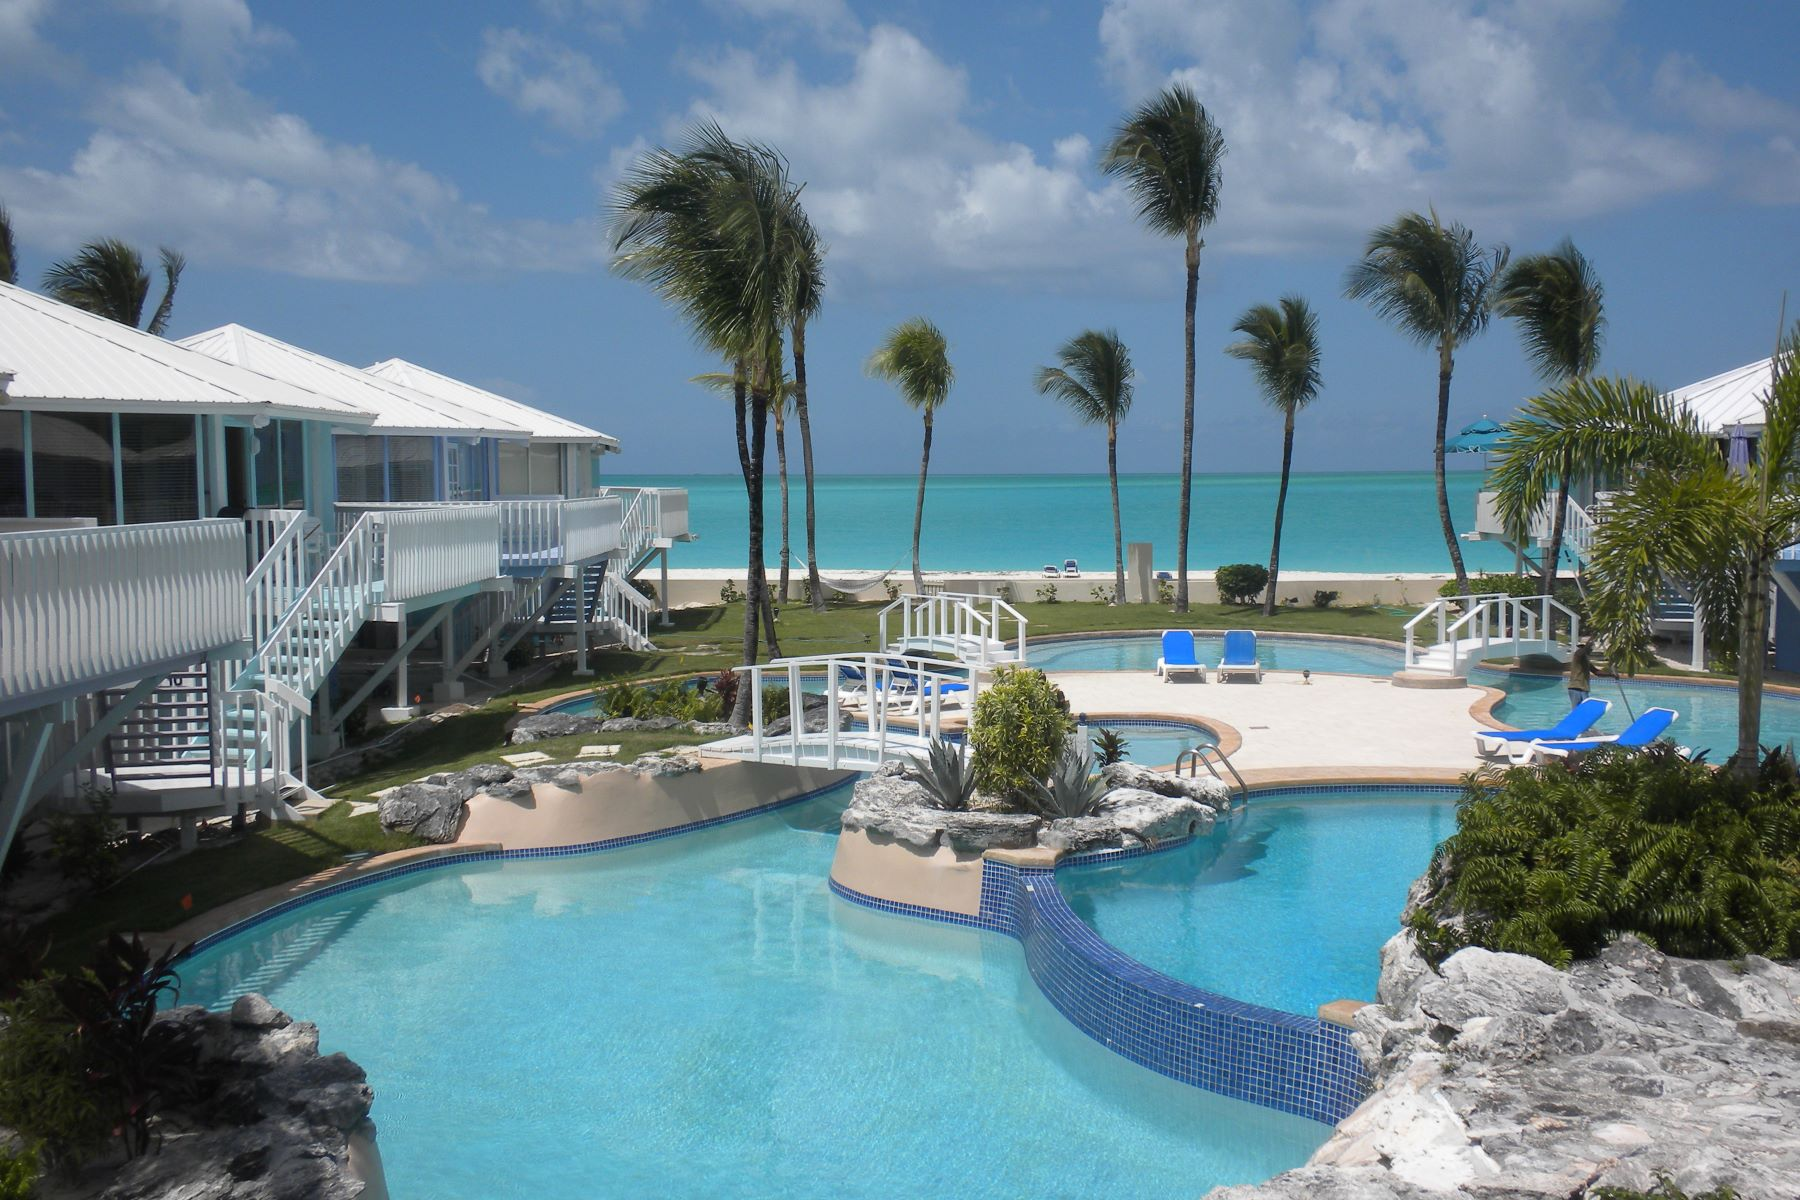 Condominium for Sale at Treasure House #11 Treasure Cay, Abaco, Bahamas